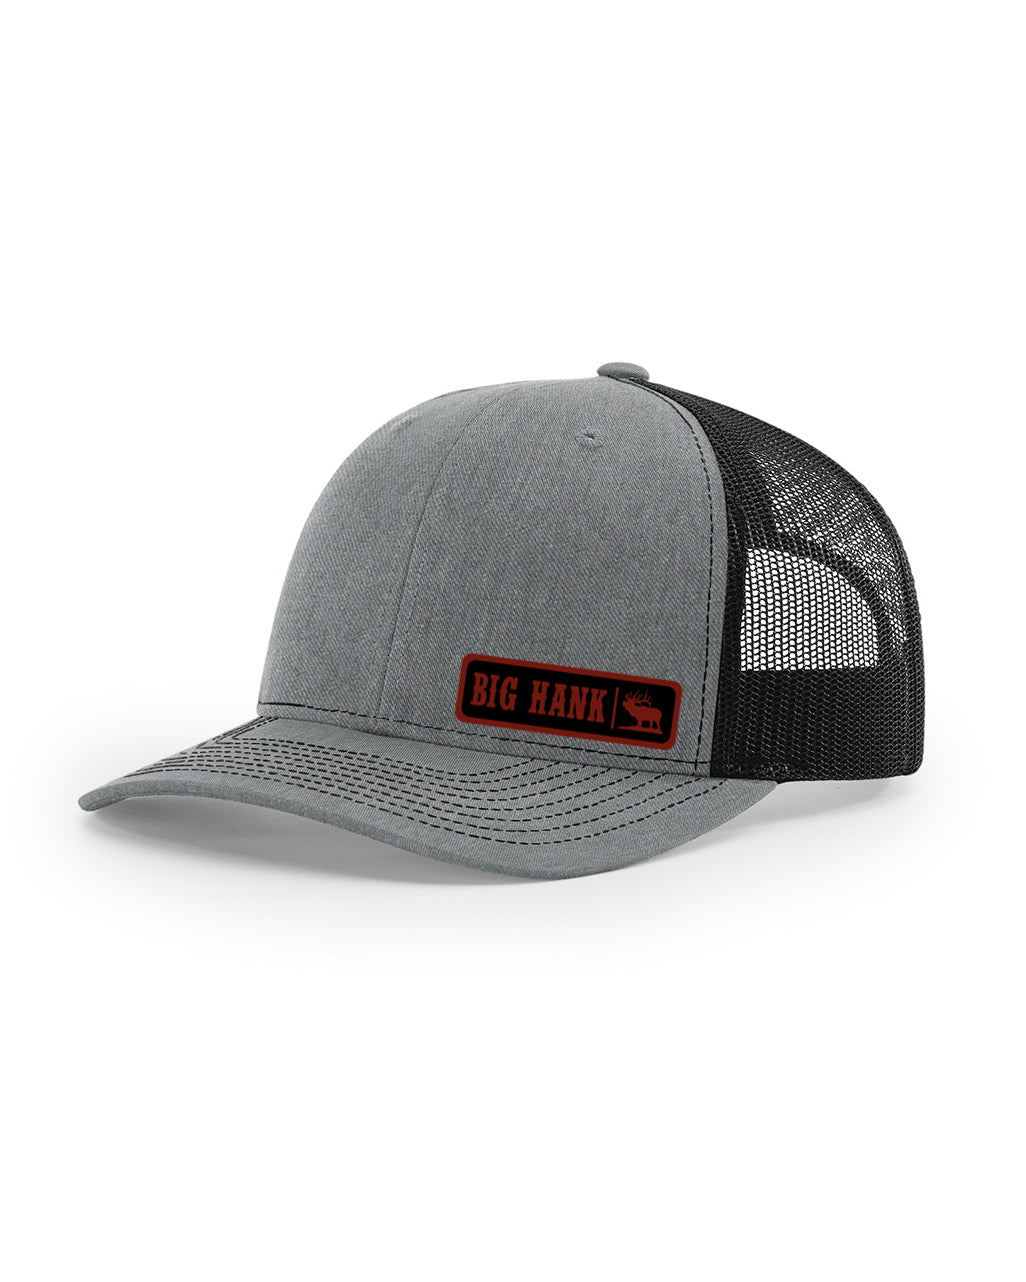 The BIG HANK LEATHER PATCH Hat